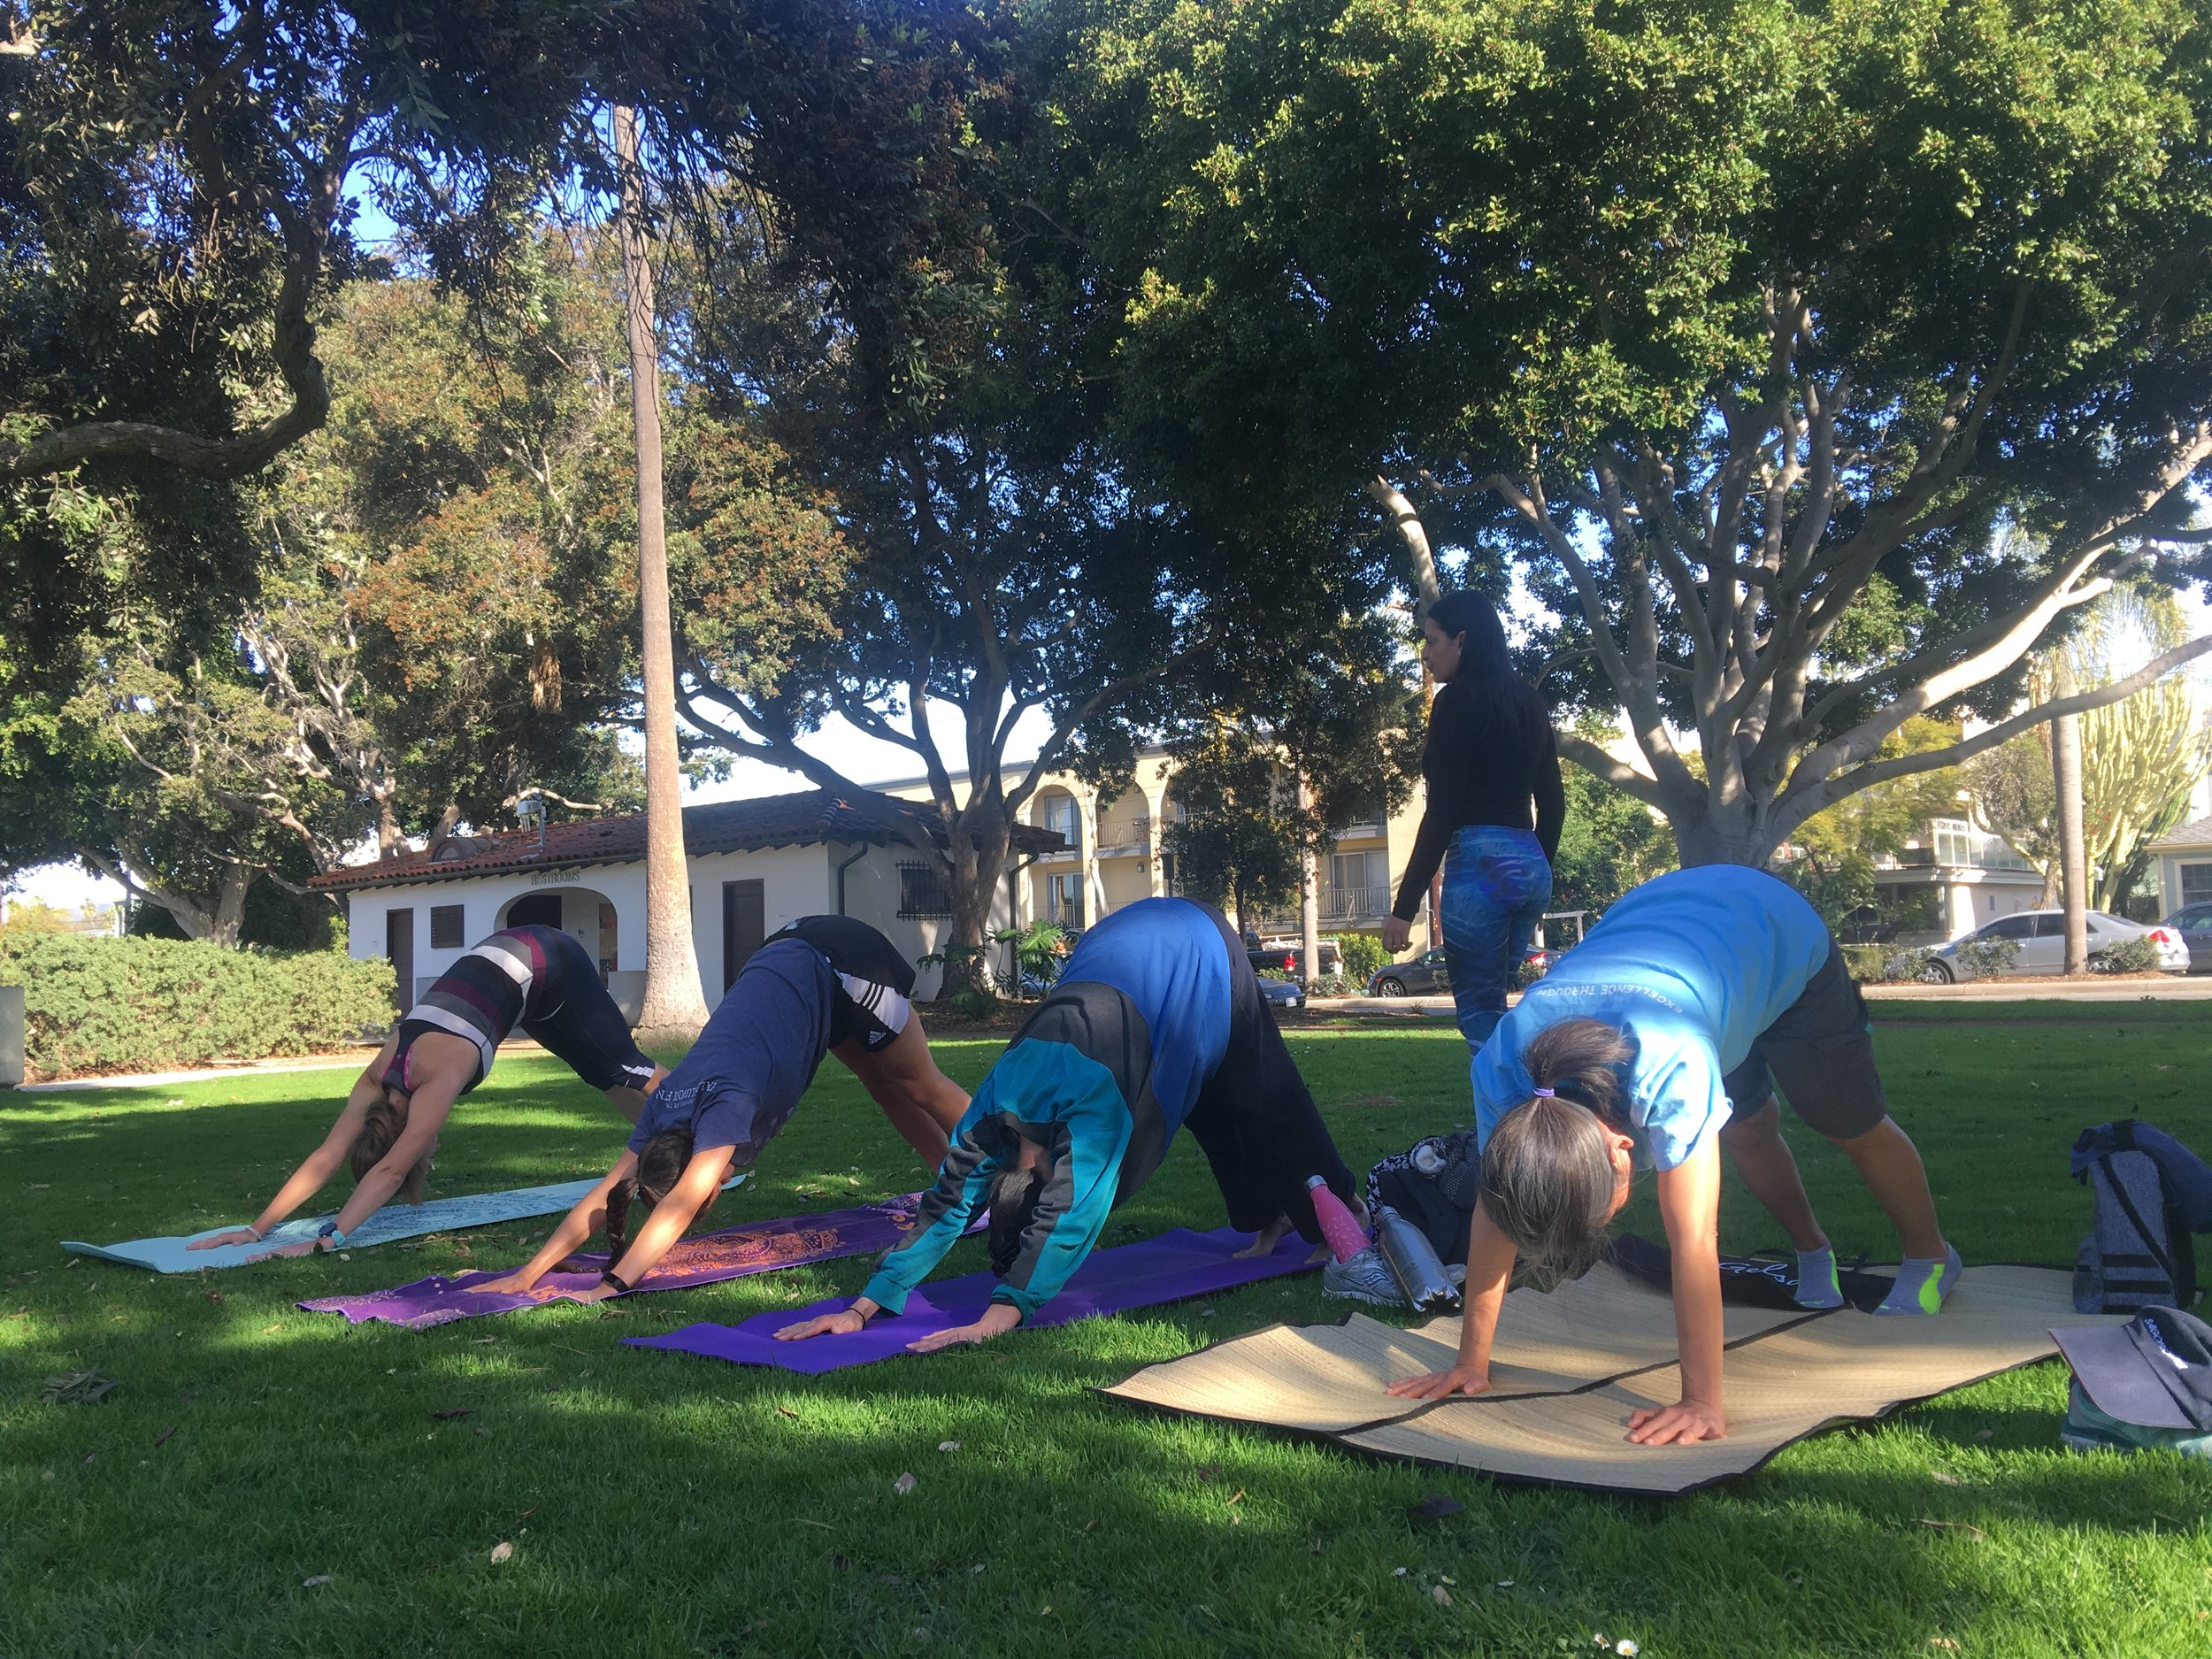 Yoga at Hotchkiss Park in Santa Monica